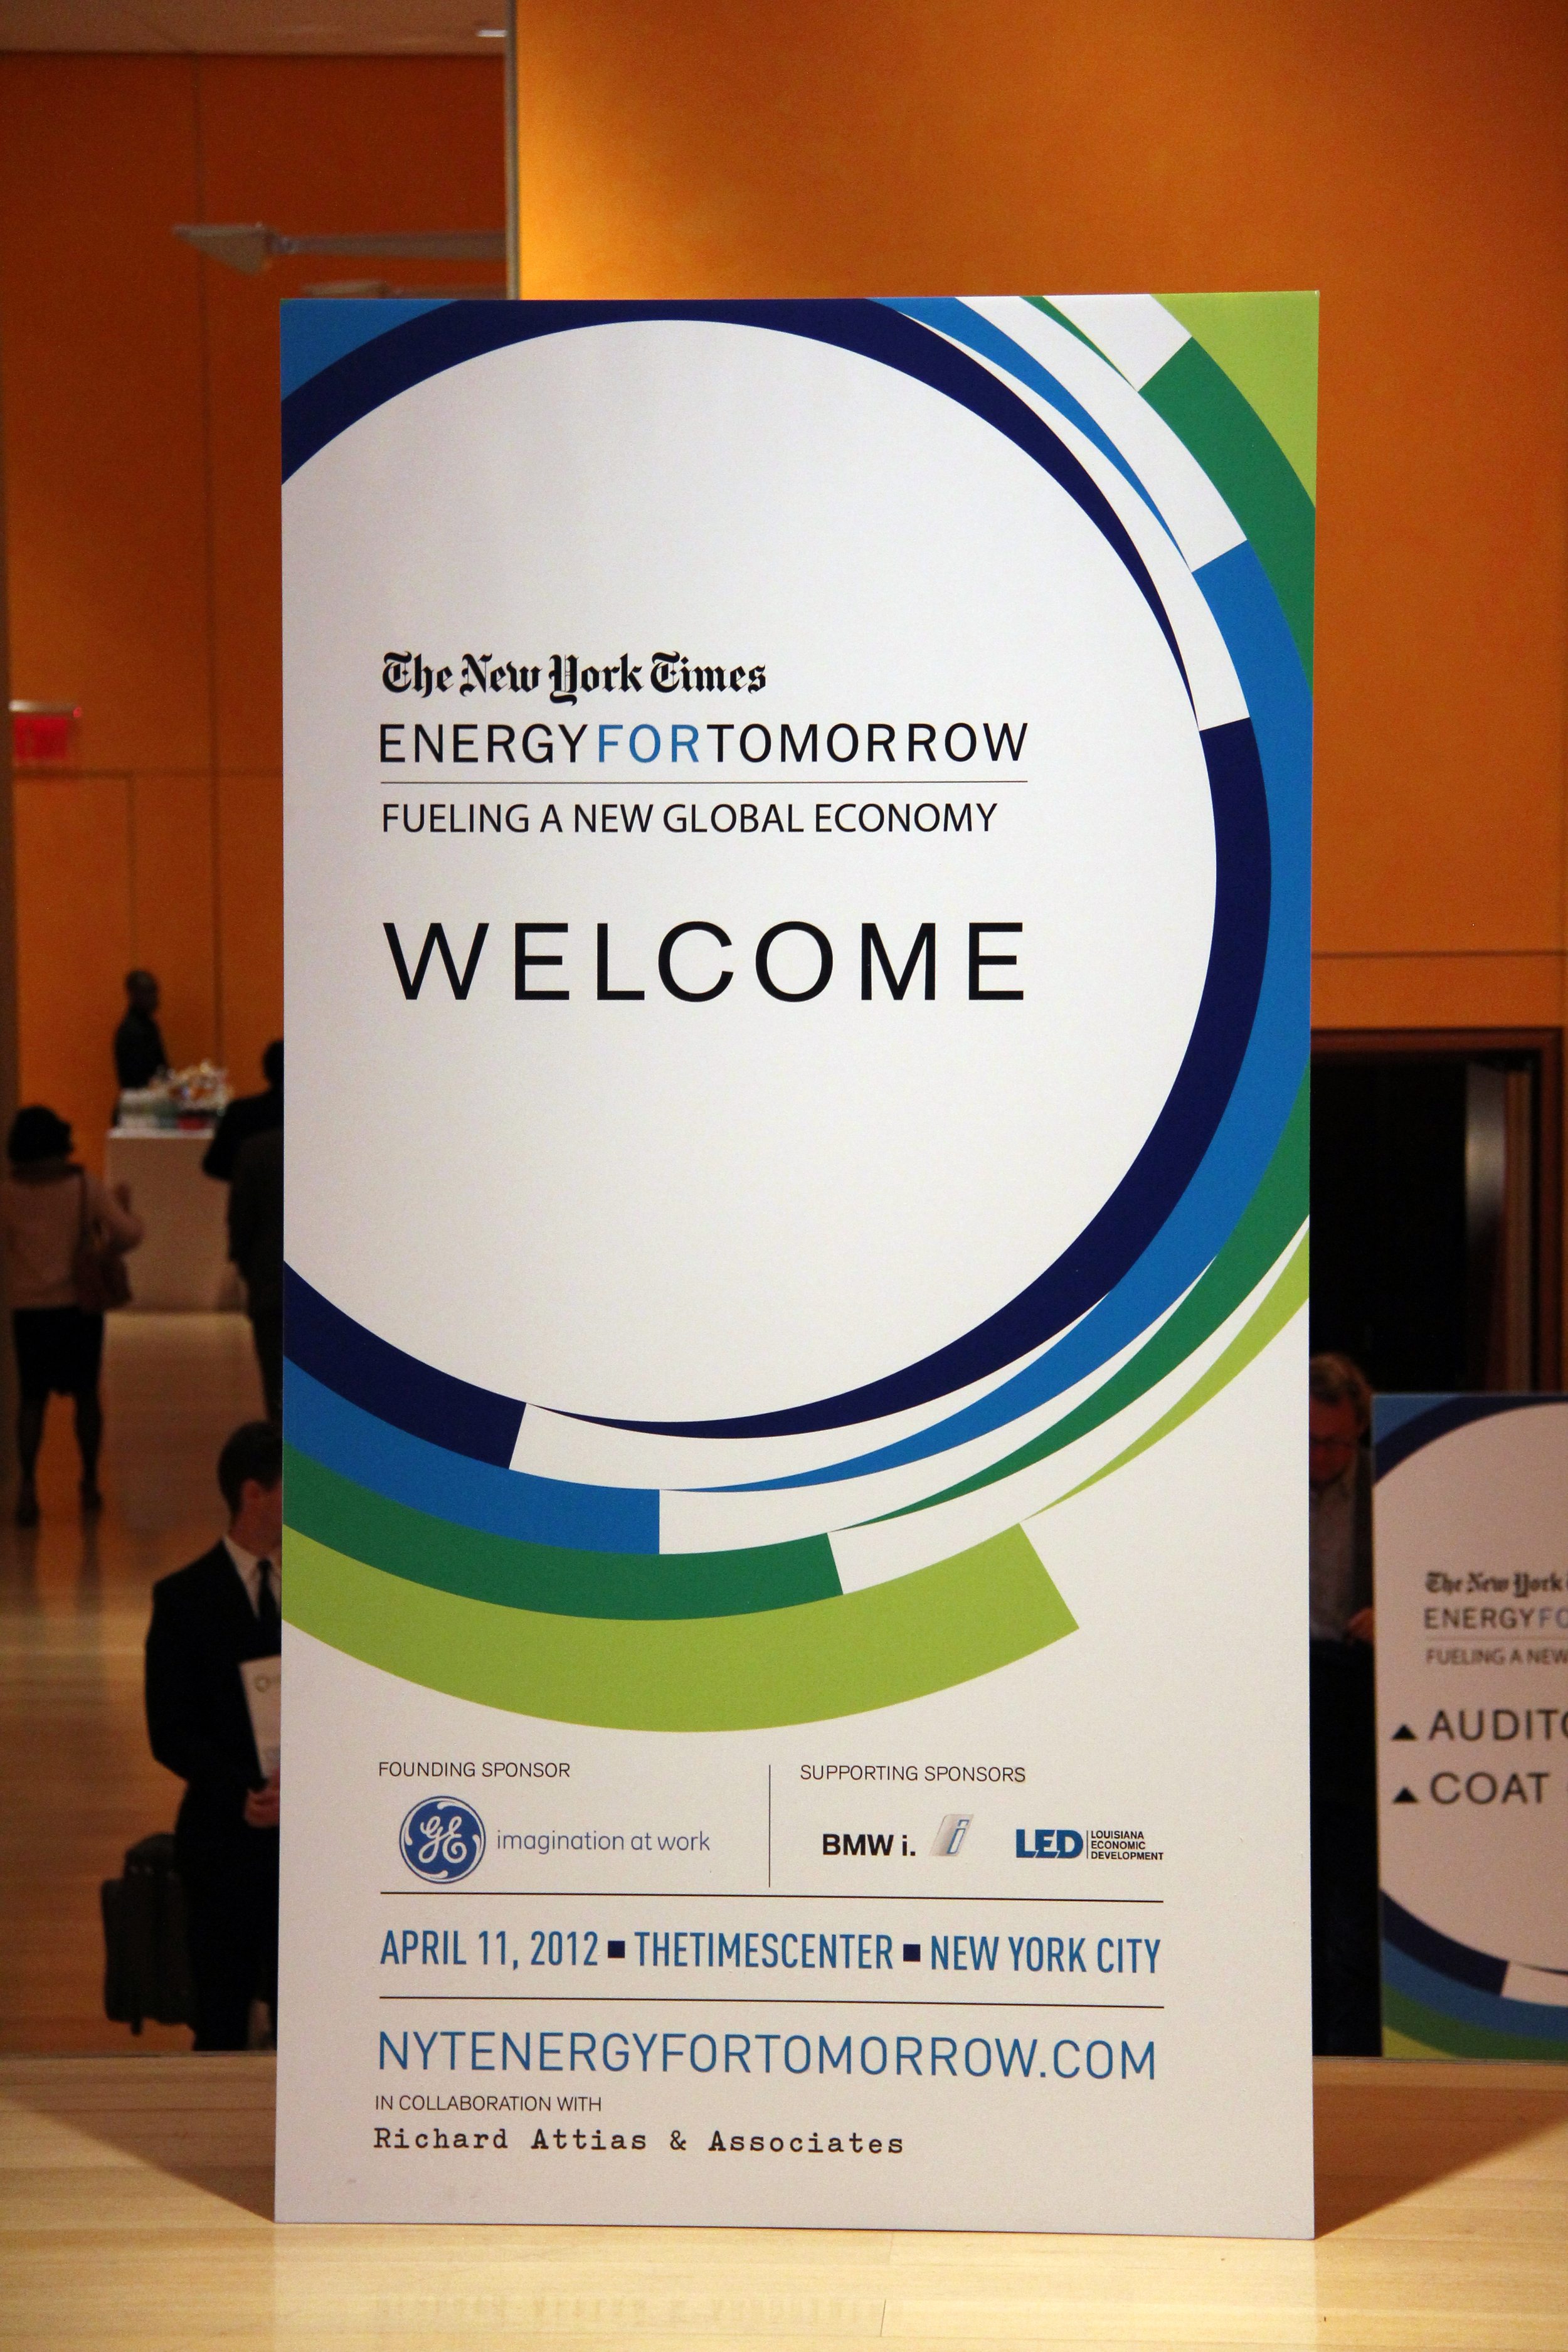 New York Times Energy Branded Conference Event Design